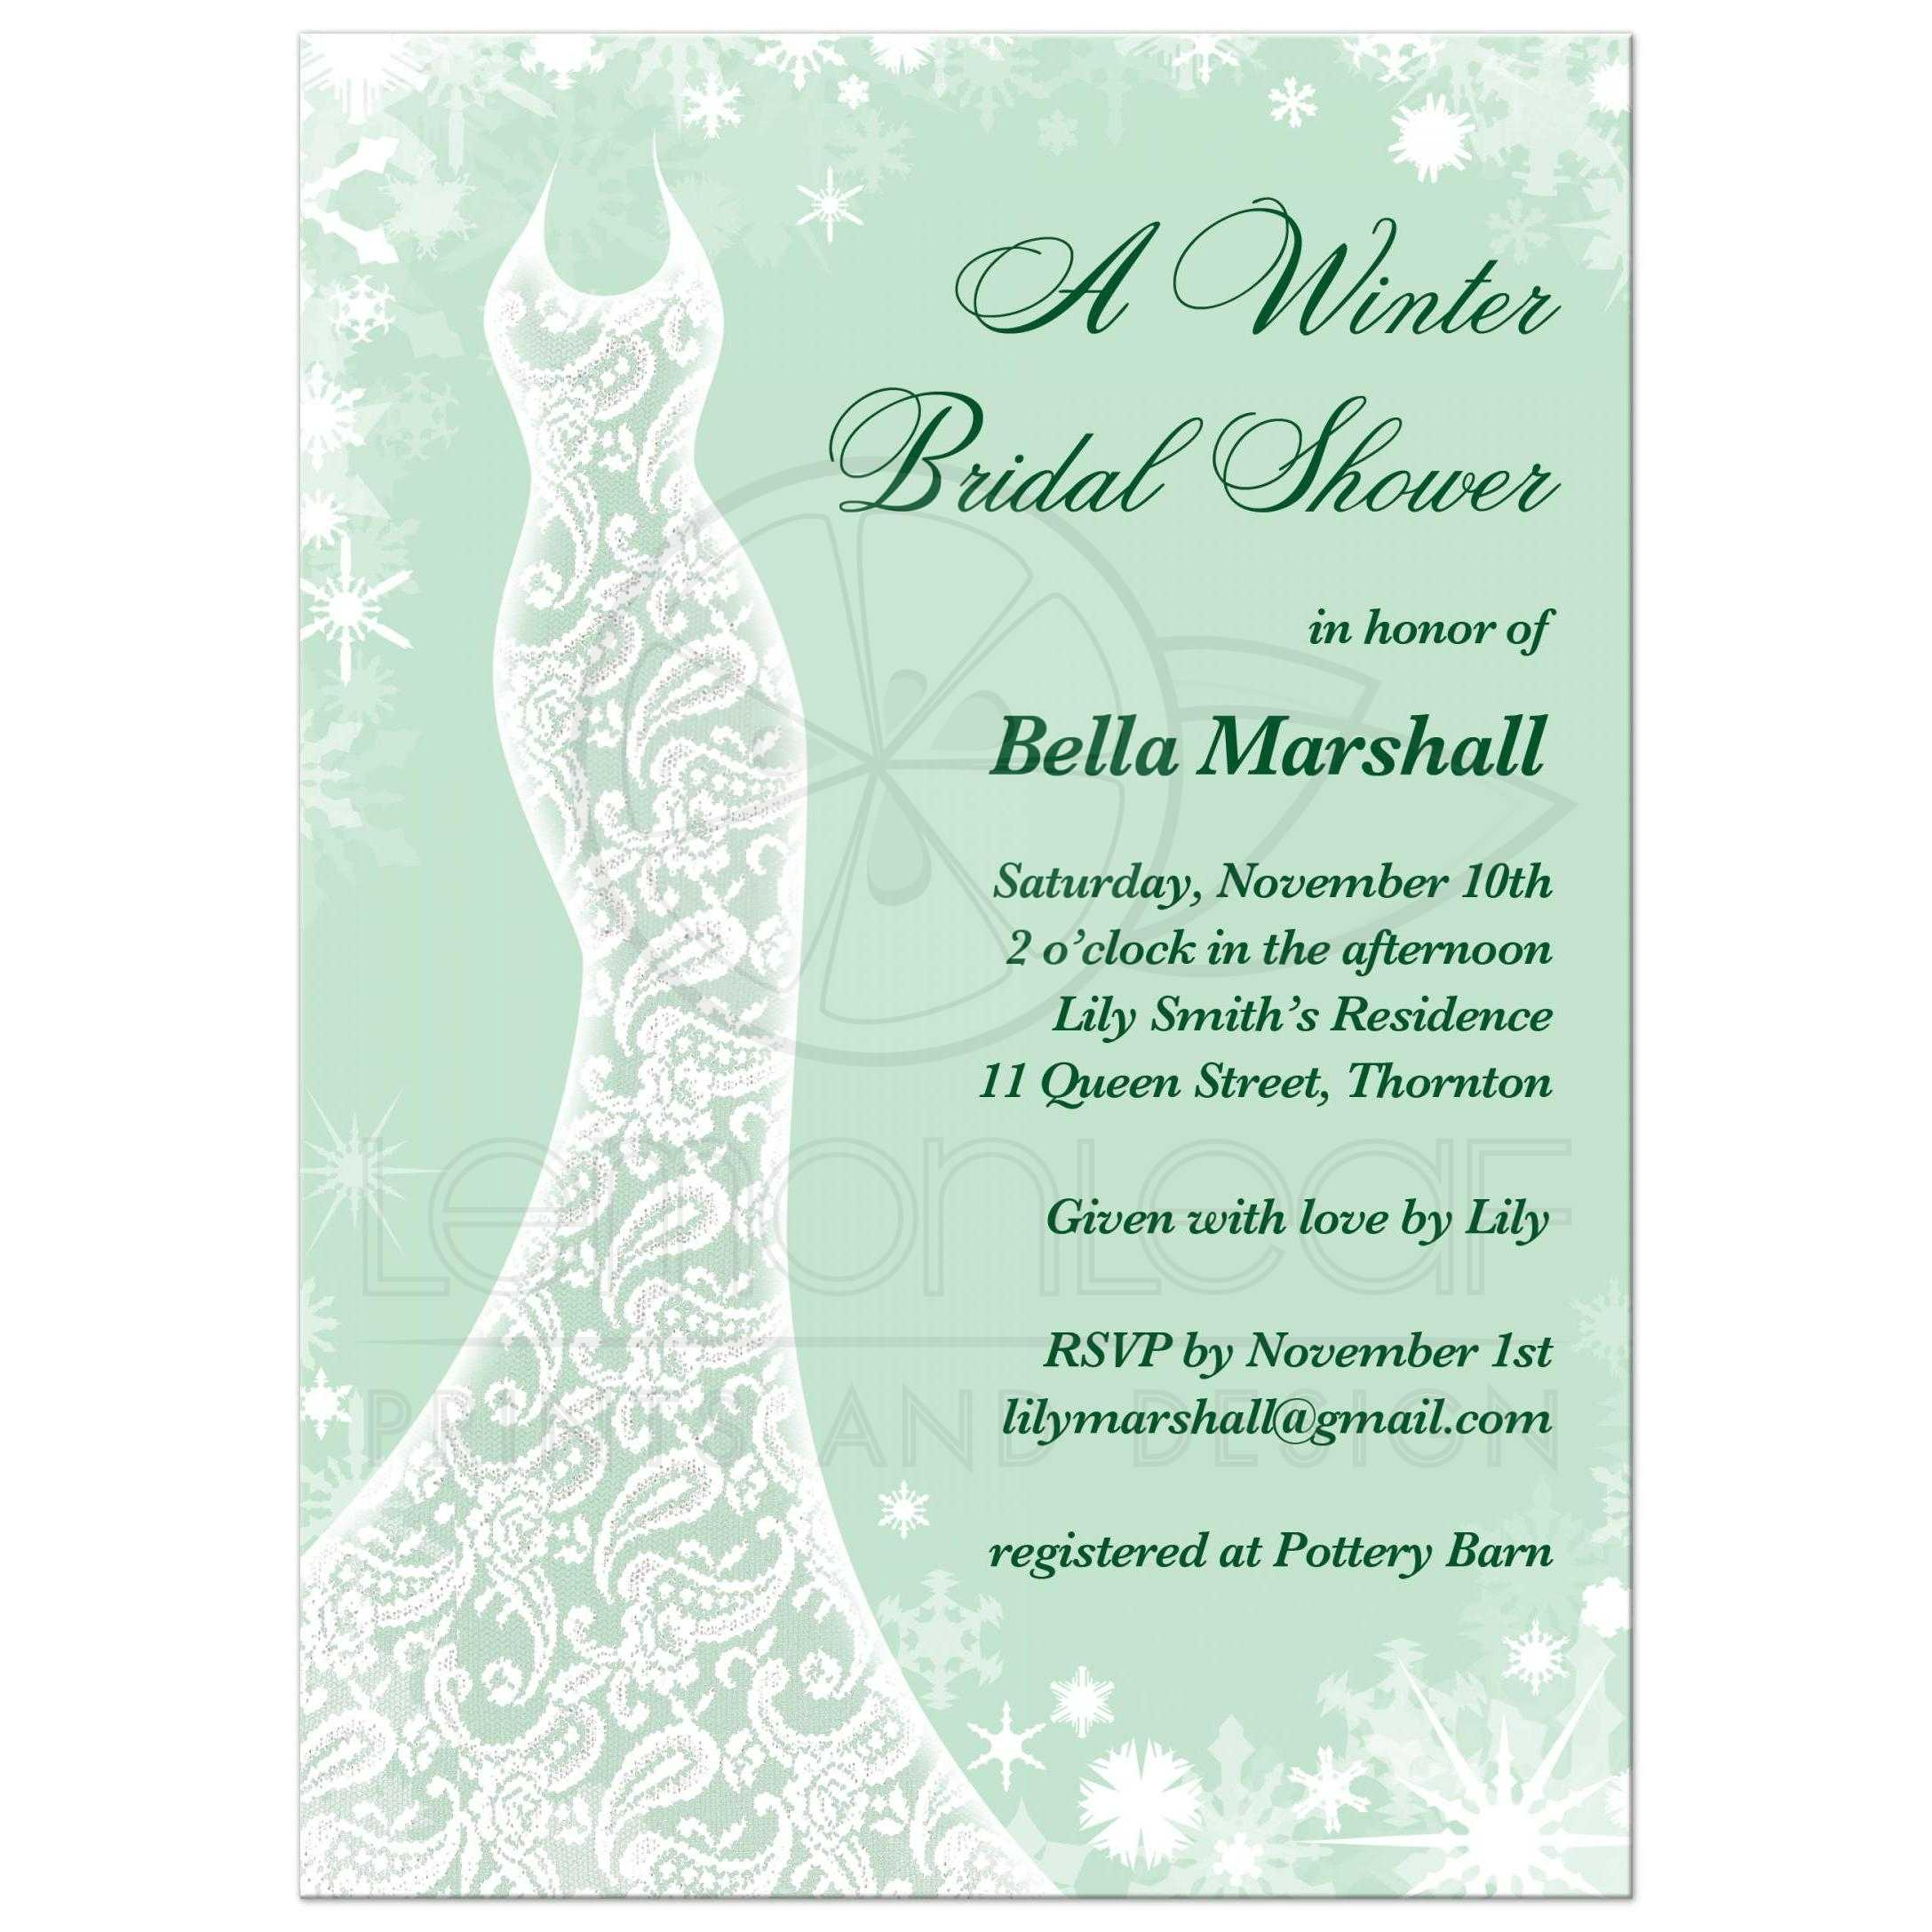 Snowflakes And A Lacy Wedding Dress Decorate This Mint Green Winter Bridal  Shower Invitation.